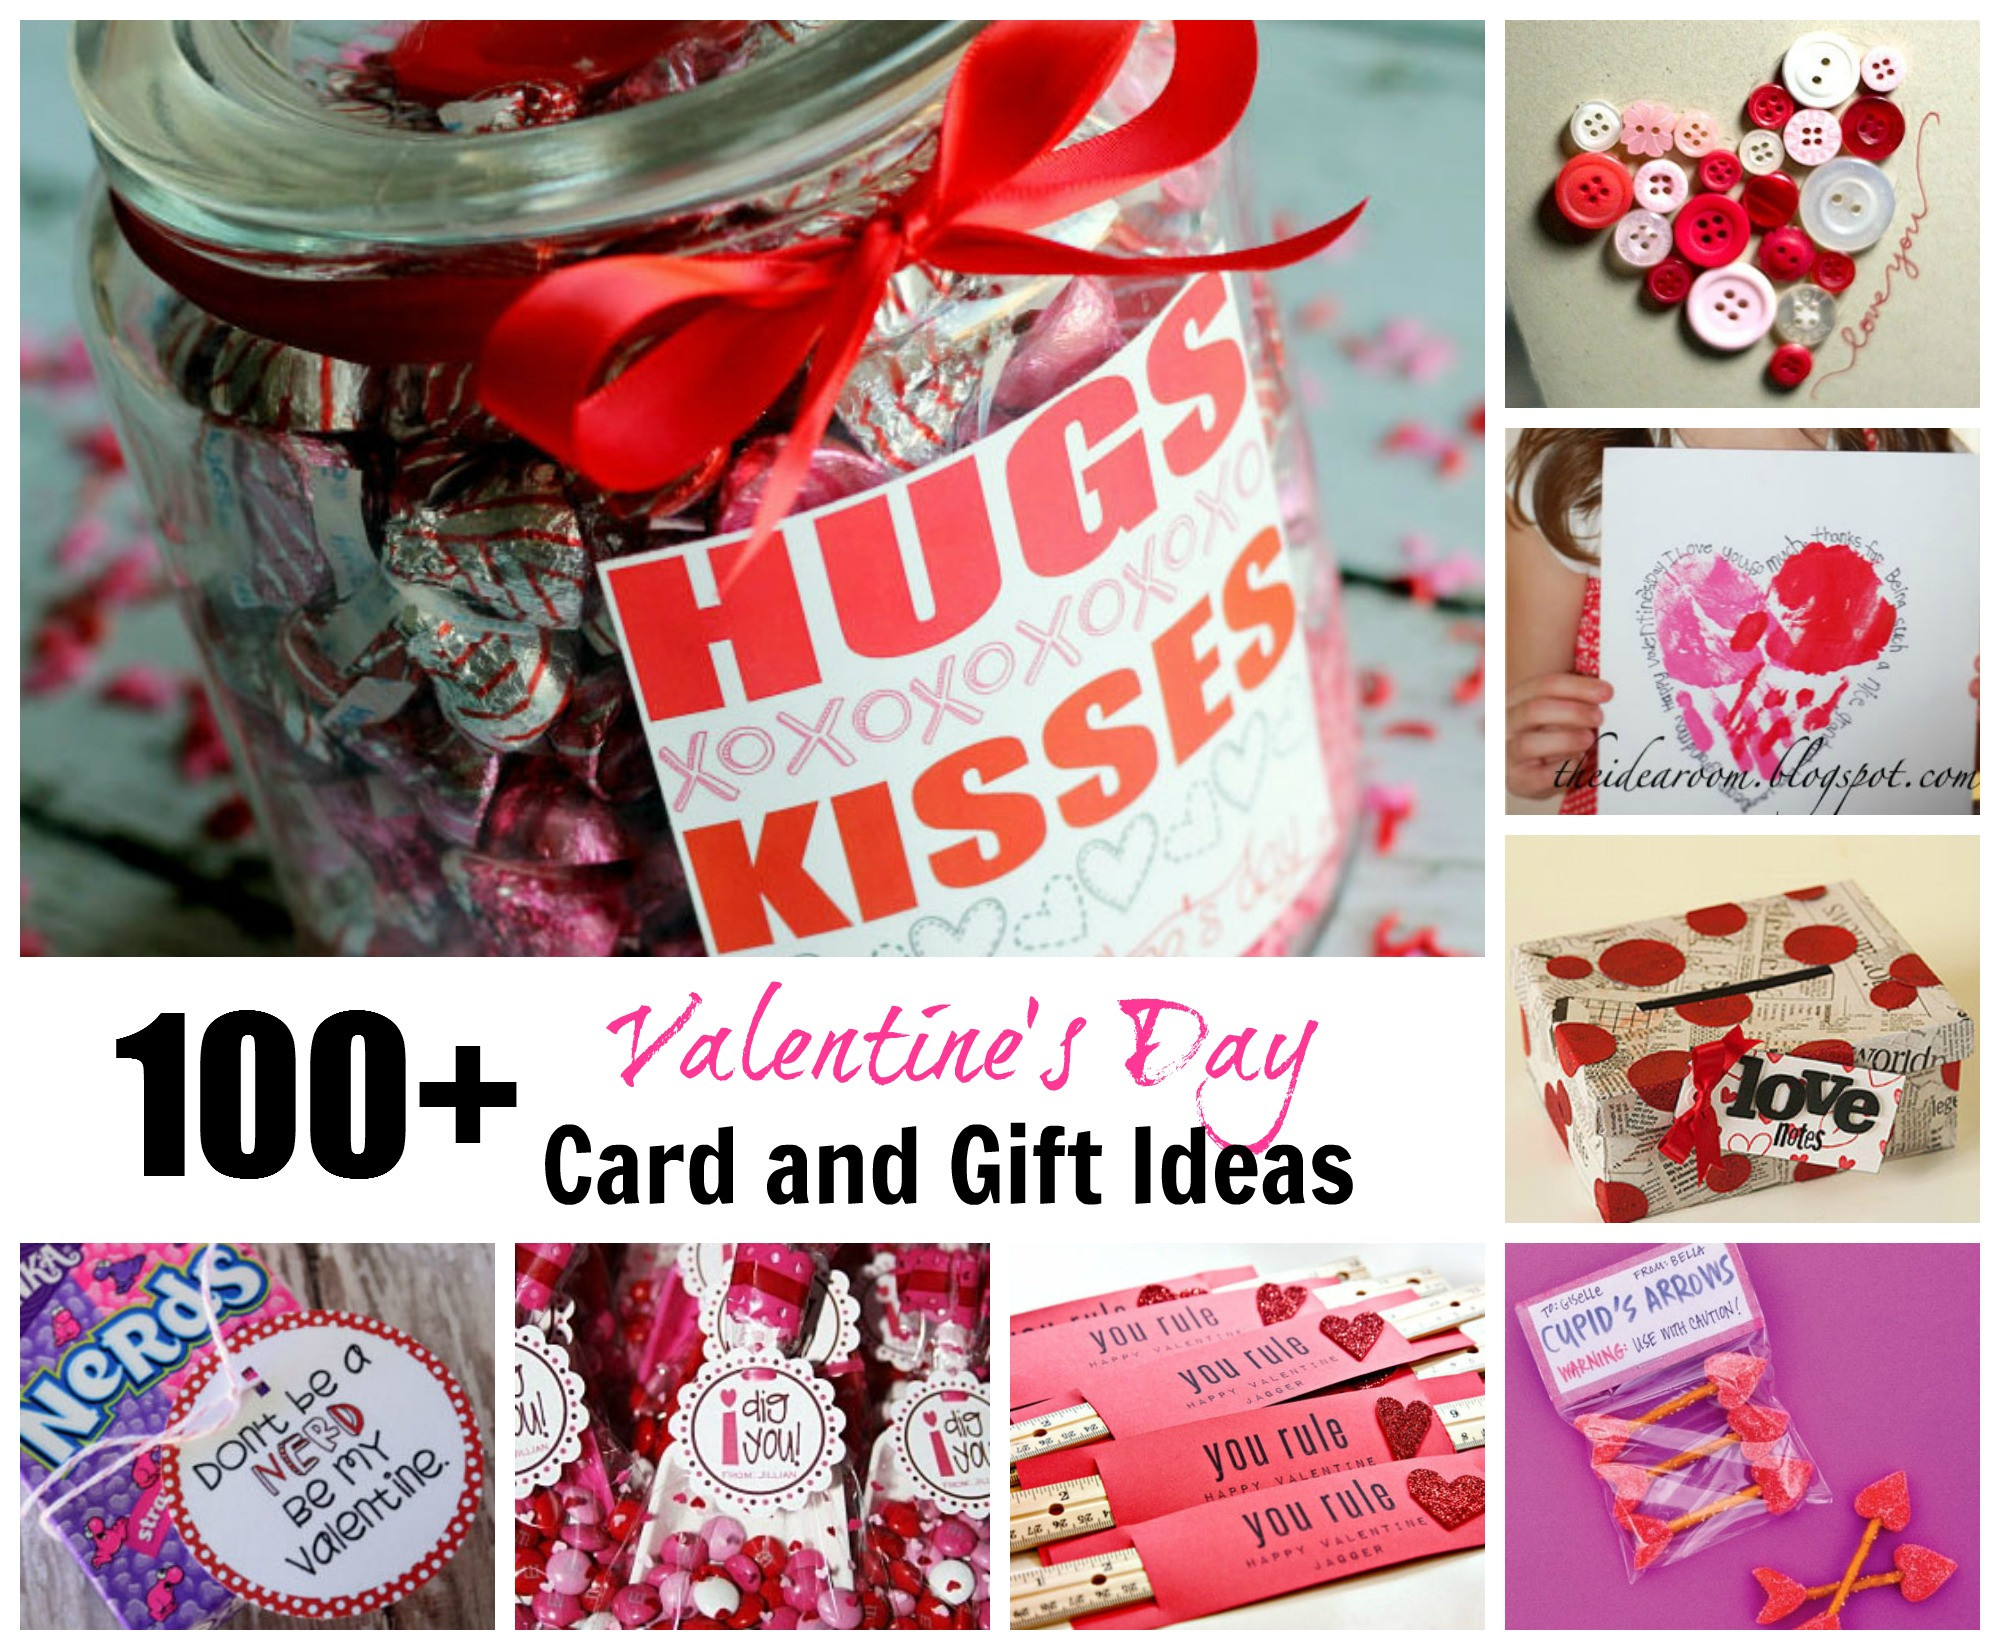 Valentines Gift Ideas  Valentine's Day Cards and Gifts